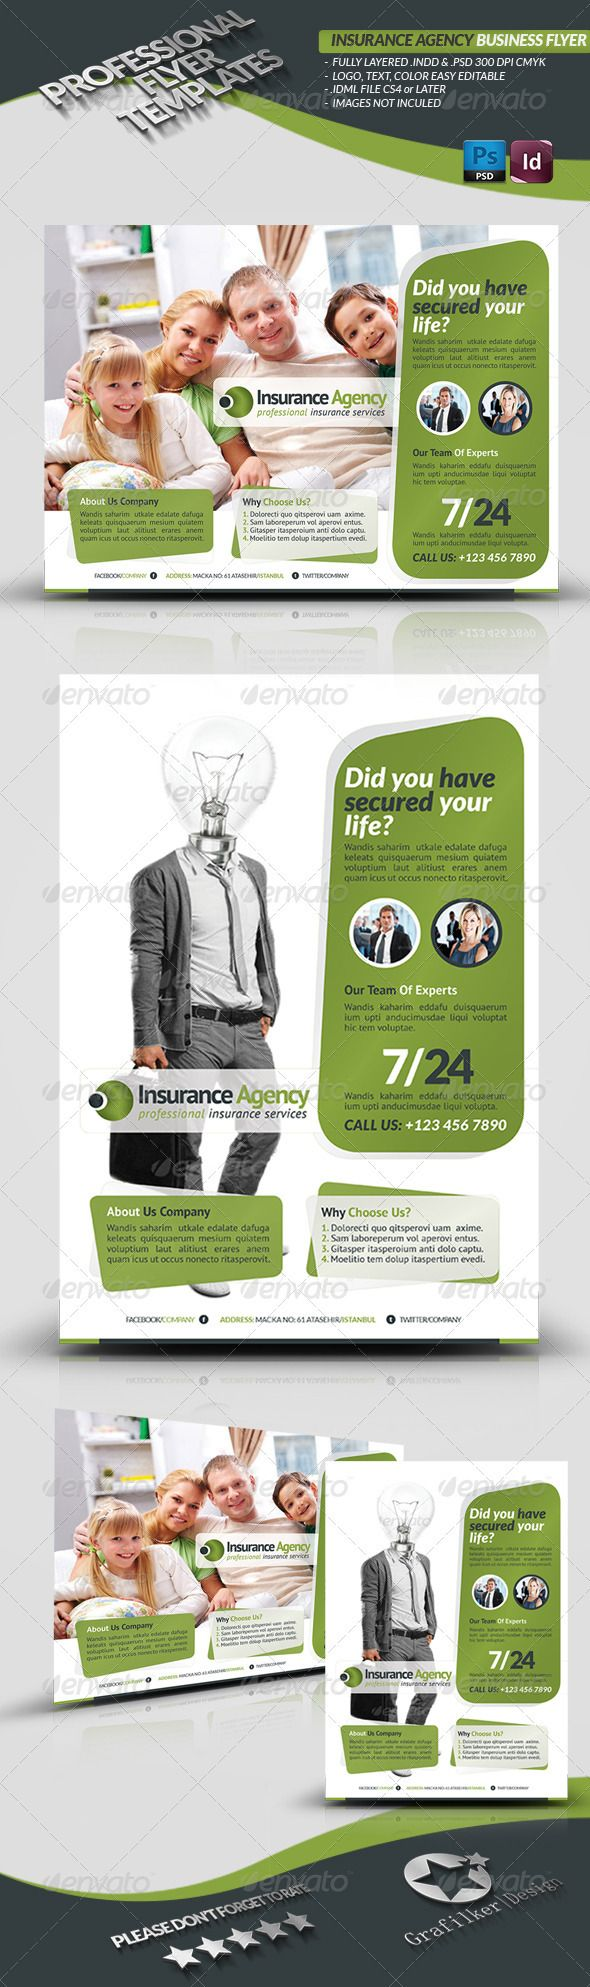 Insurance Agency Flyer Graphicriver Insurance Agency Corporate